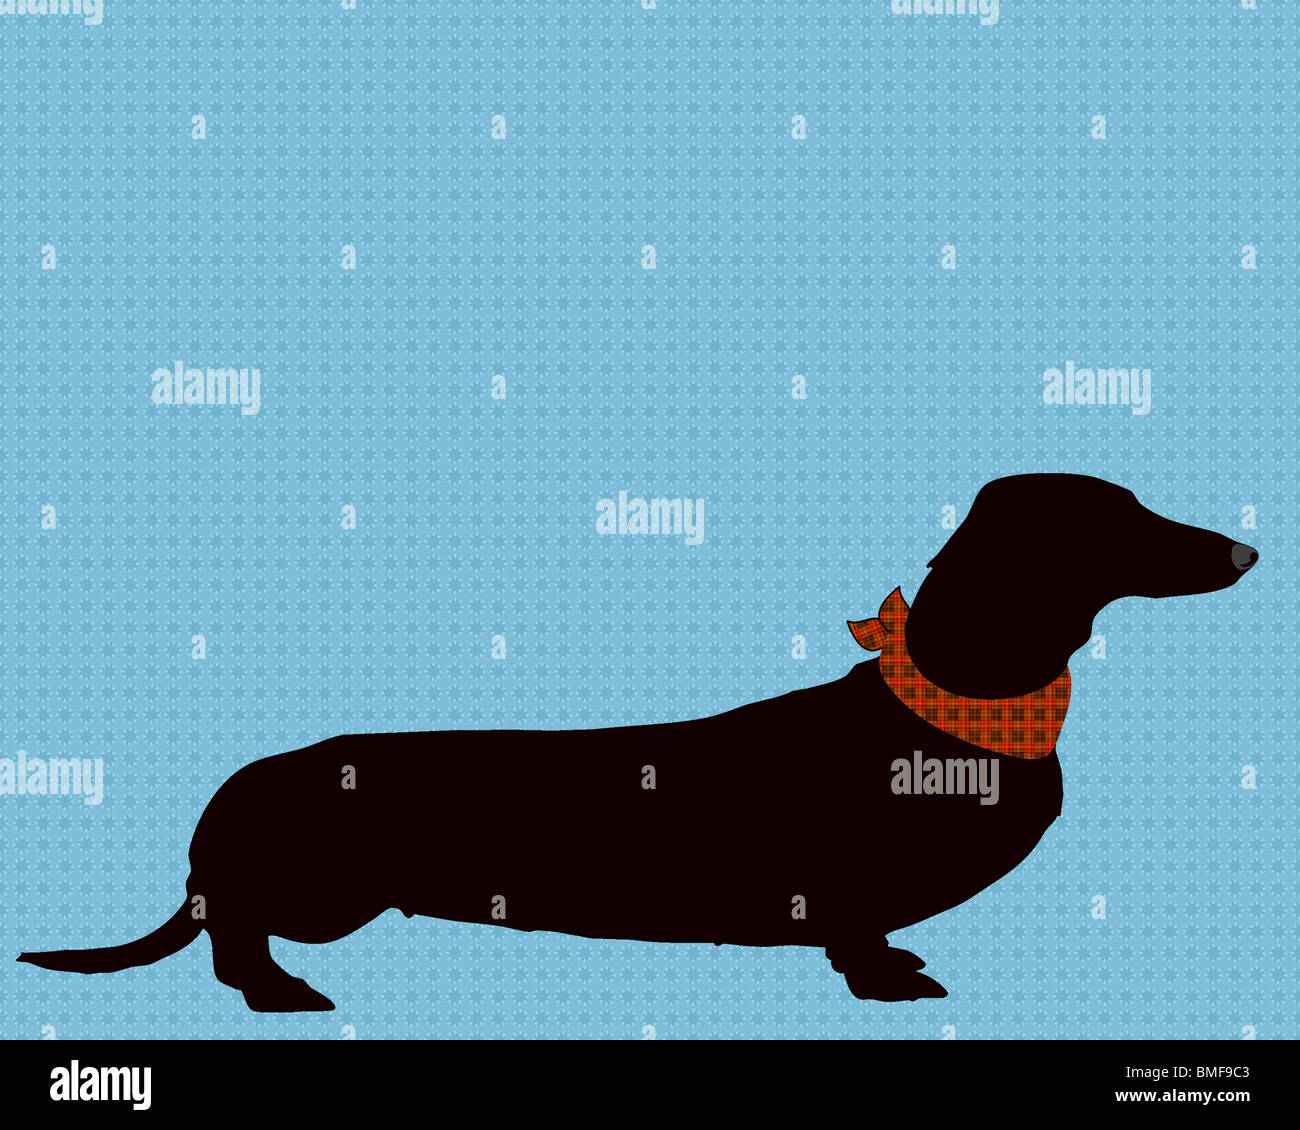 art, illustration, print, dachshund, dog, pet, animal, pet lover, dog lover, silhouette, pets, wall decor, Stock Photo